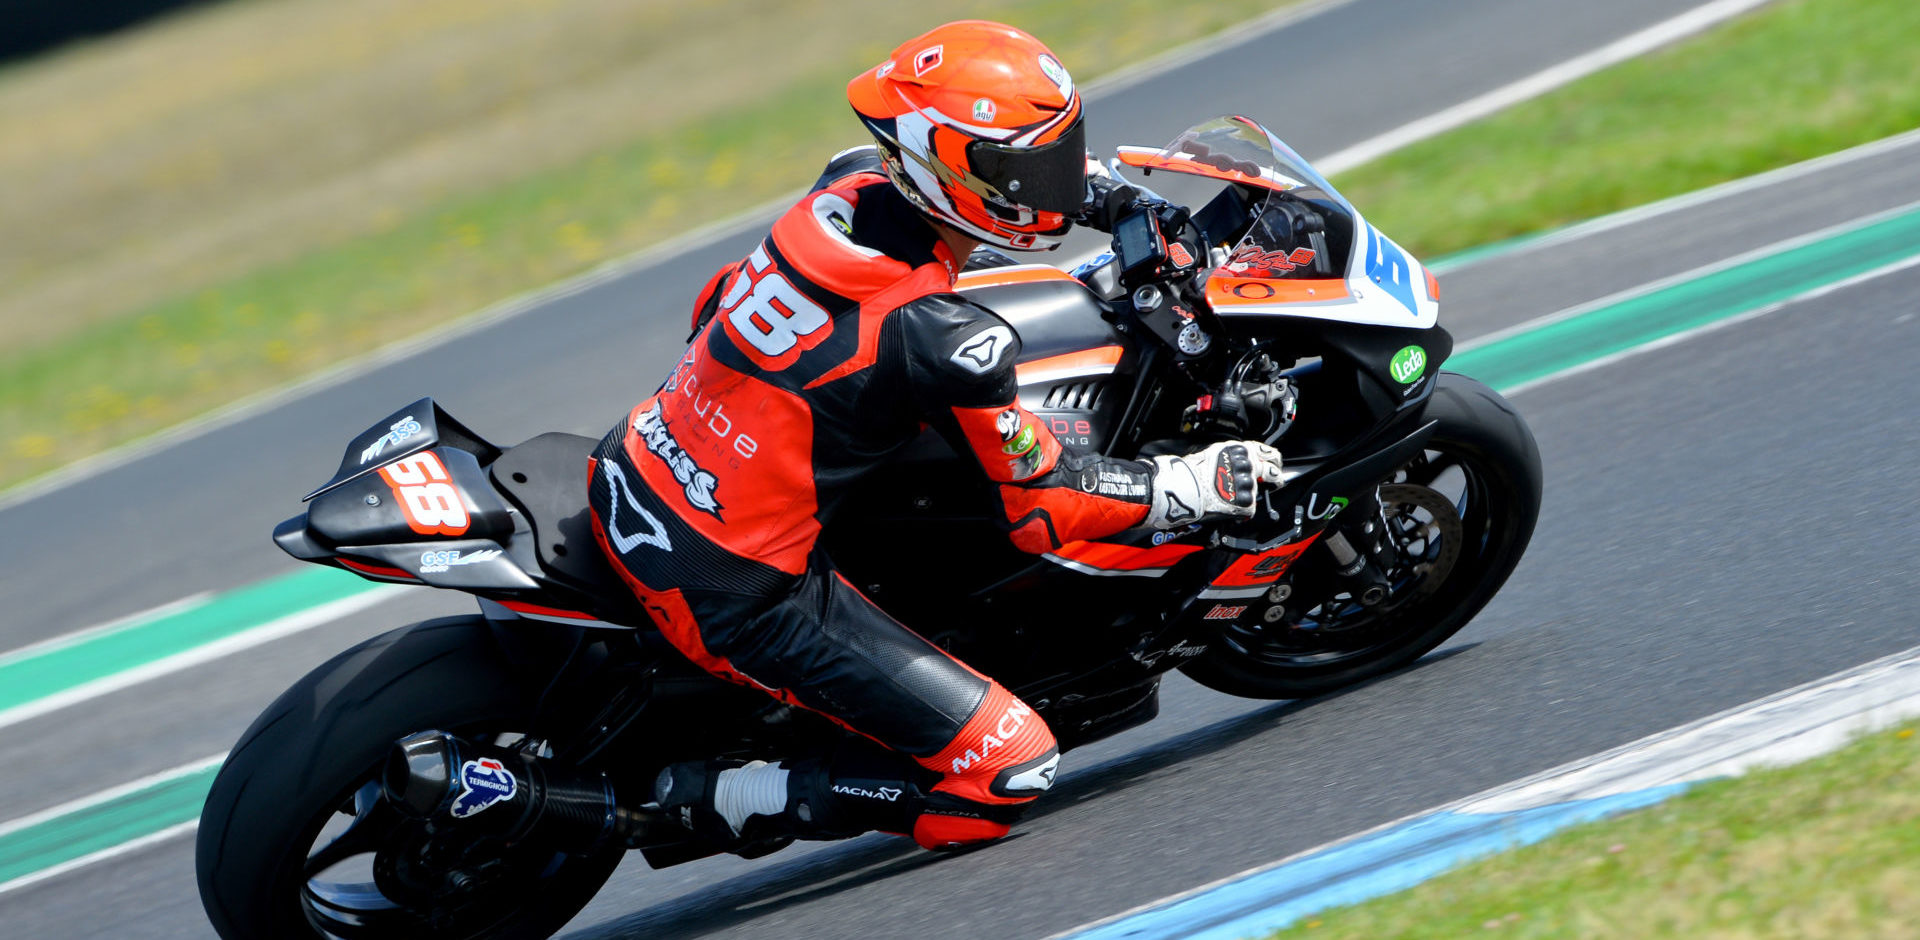 Oli Bayliss (68), son of three-time Superbike World Champion, Troy Bayliss. Photo by Russell Colvin, courtesy of Motorcycling Australia.